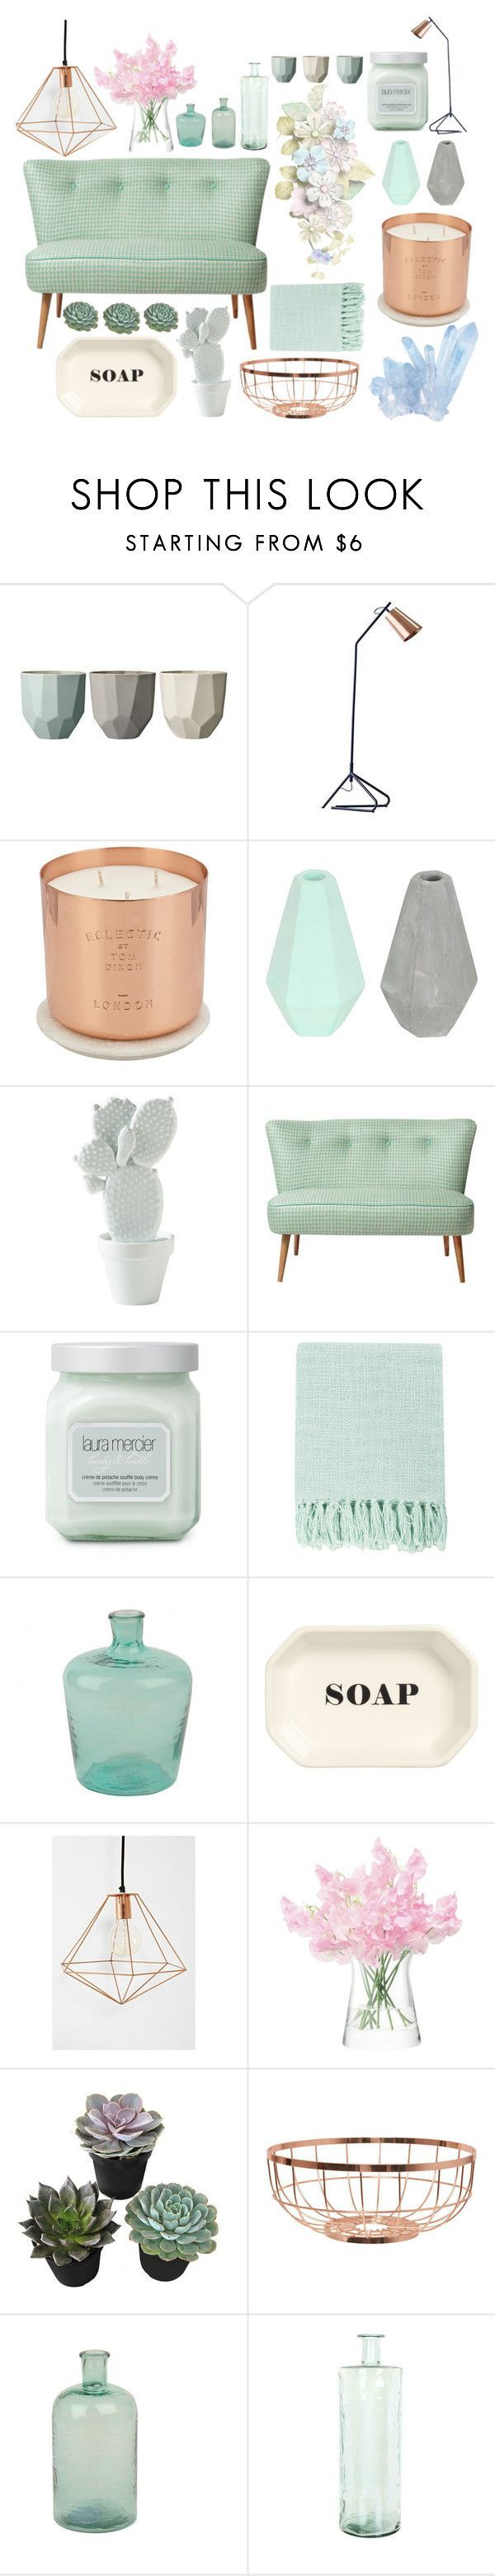 """Pastel home. #mint #copper #glassware"" by lilypretty ❤️ liked on Polyvore featuring interior, interiors, interior design, home, home decor, interior decorating, Bloomingville, Tom Dixon, Korridor and Laura Mercier"